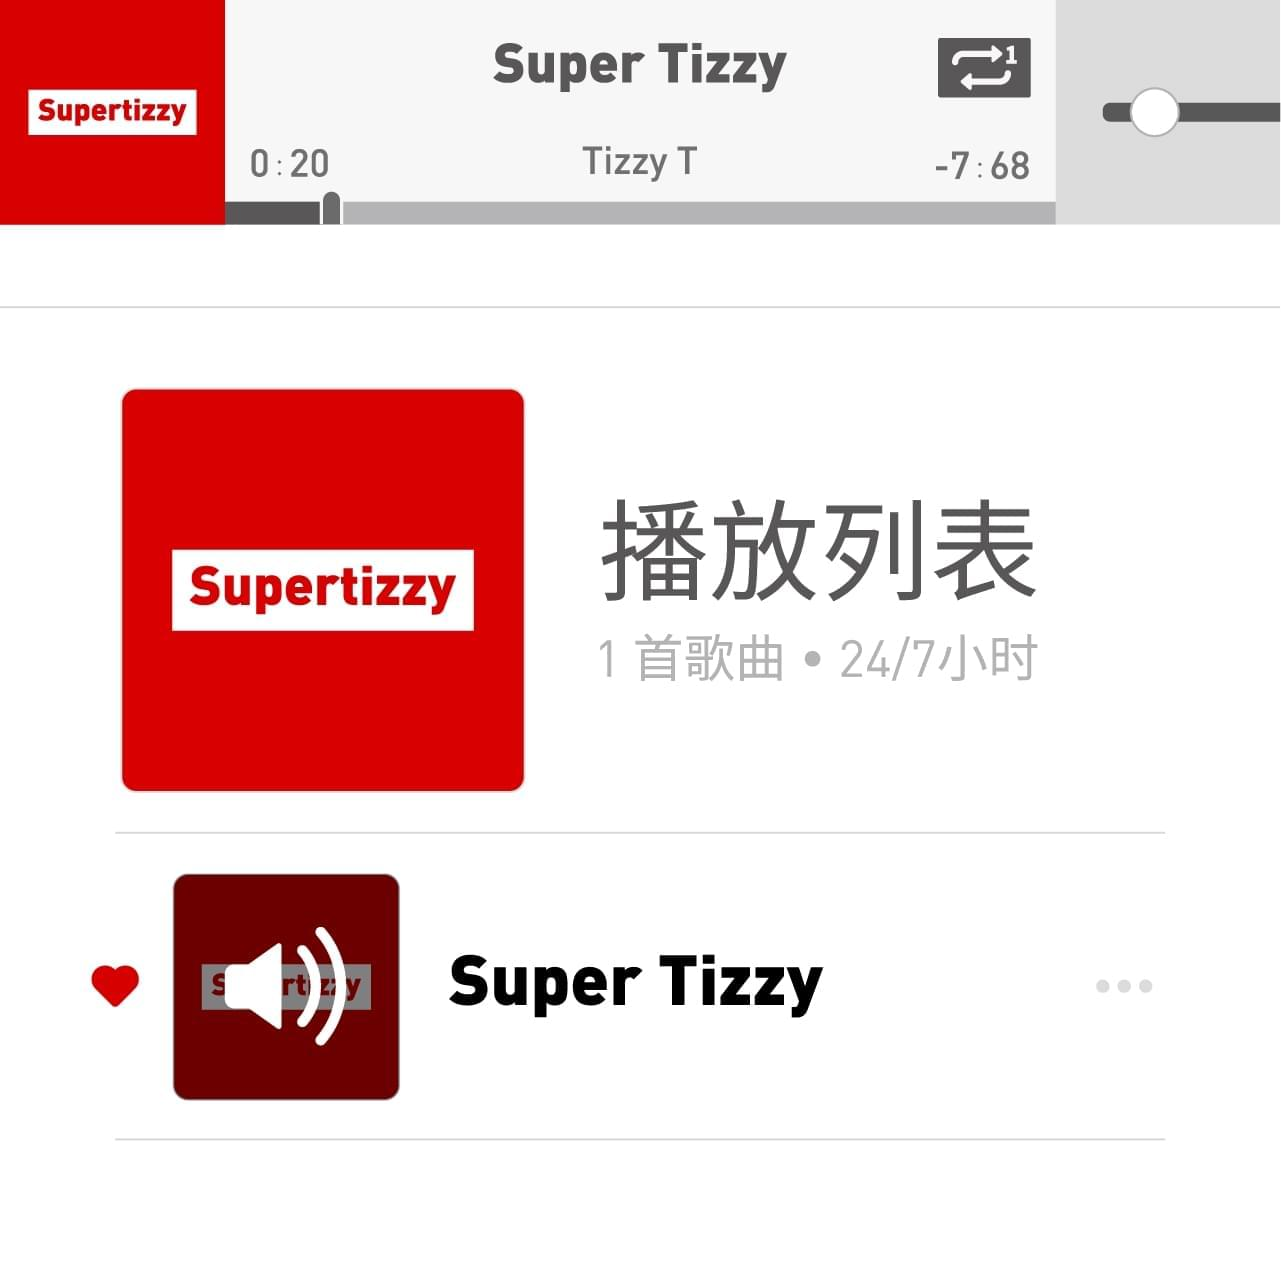 Tizzy T新歌《Super Tizzy》发布 借机表白歌迷